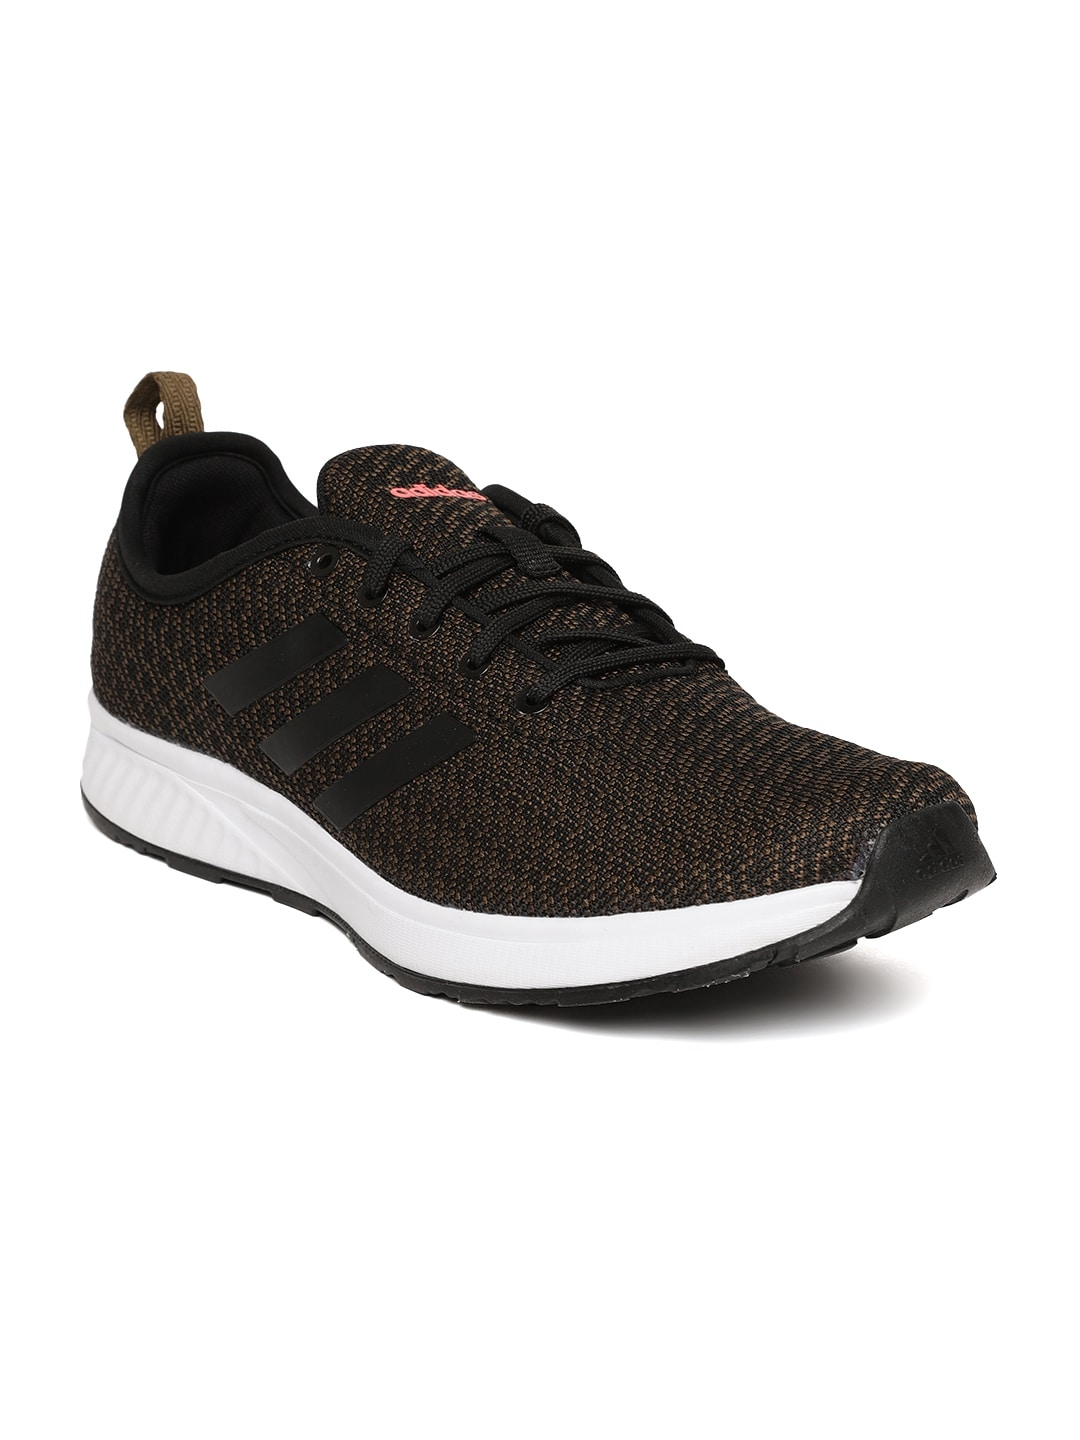 adidas - Exclusive adidas Online Store in India at Myntra 23d9488de6